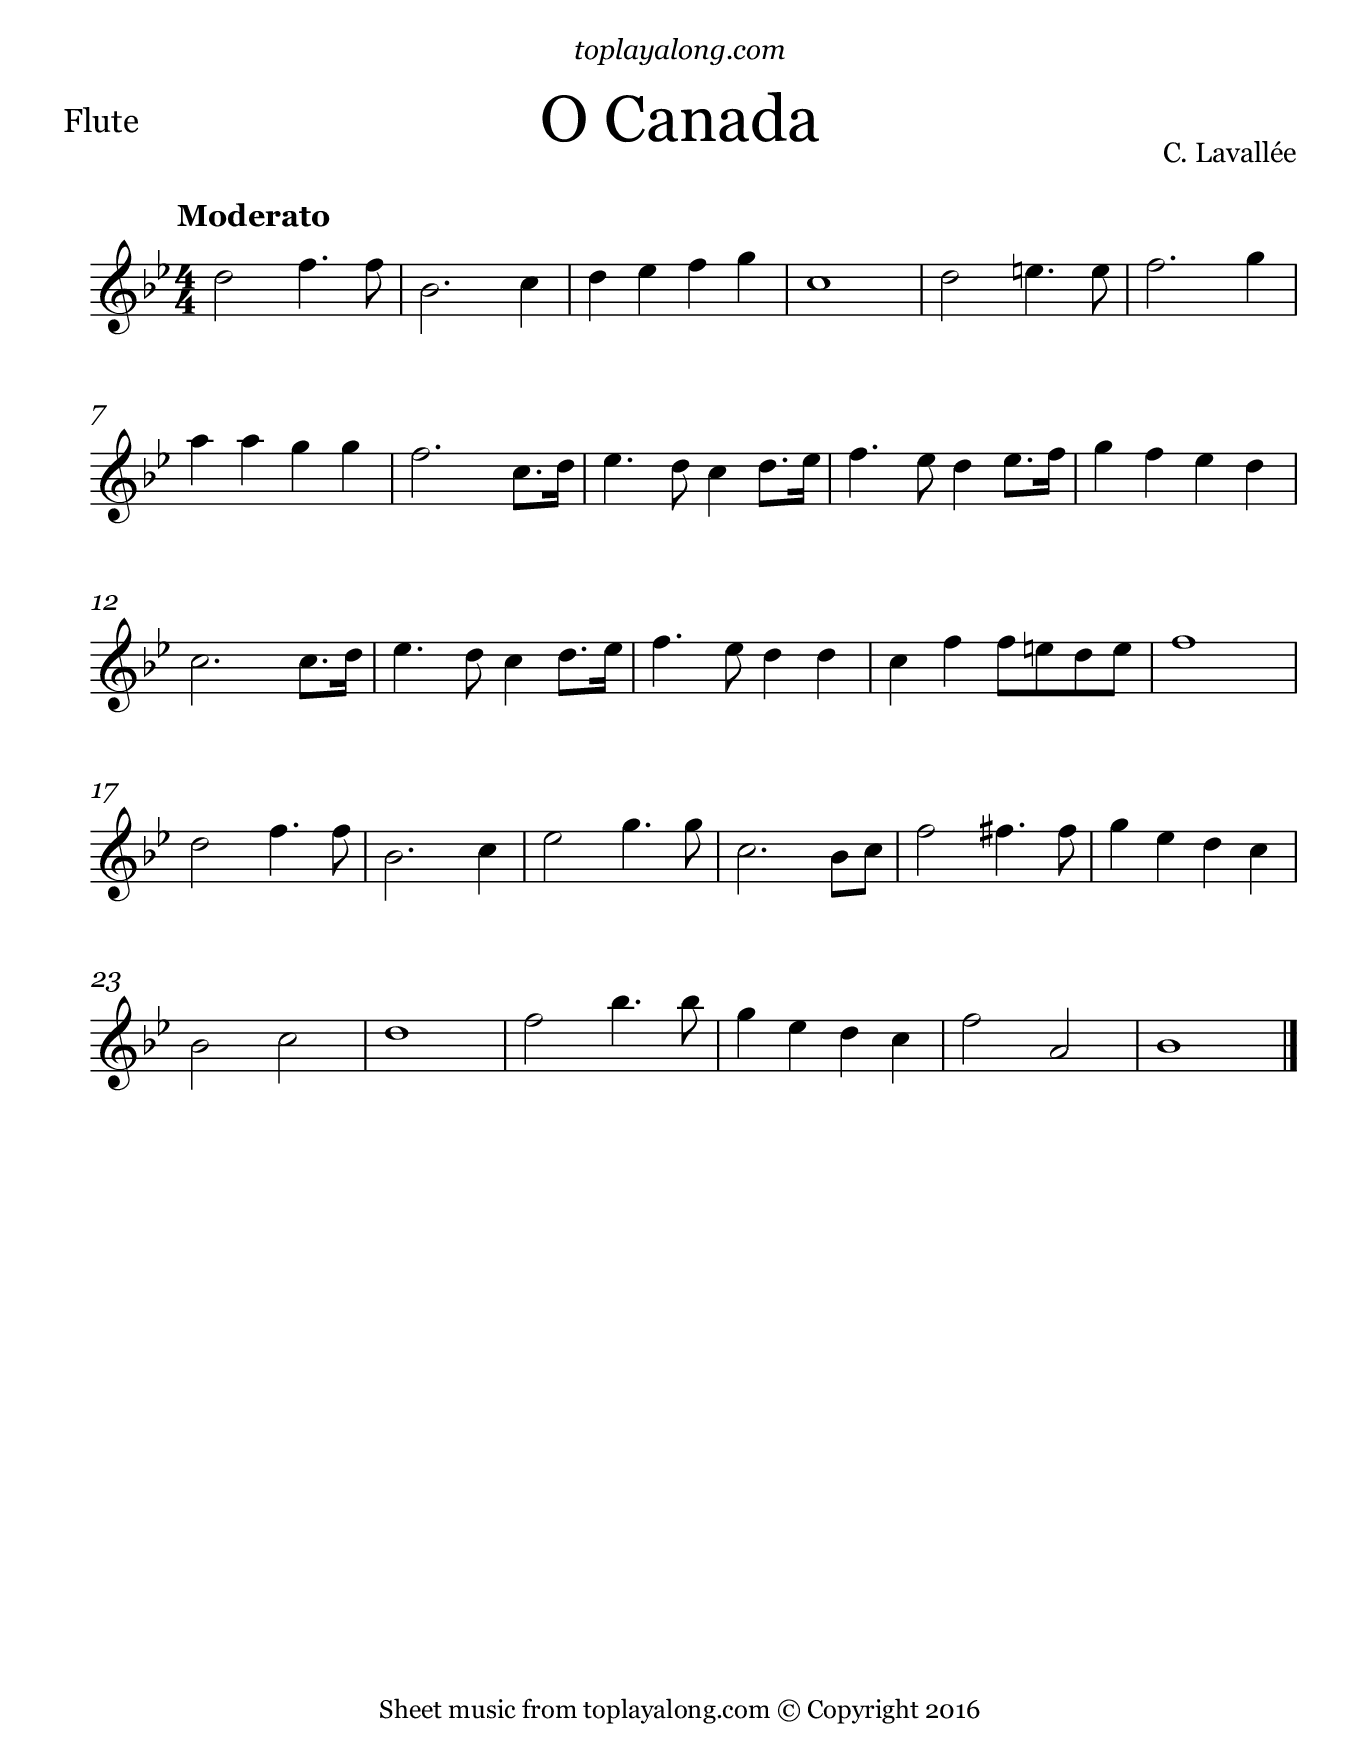 picture about Free Printable Flute Sheet Music named O Canada